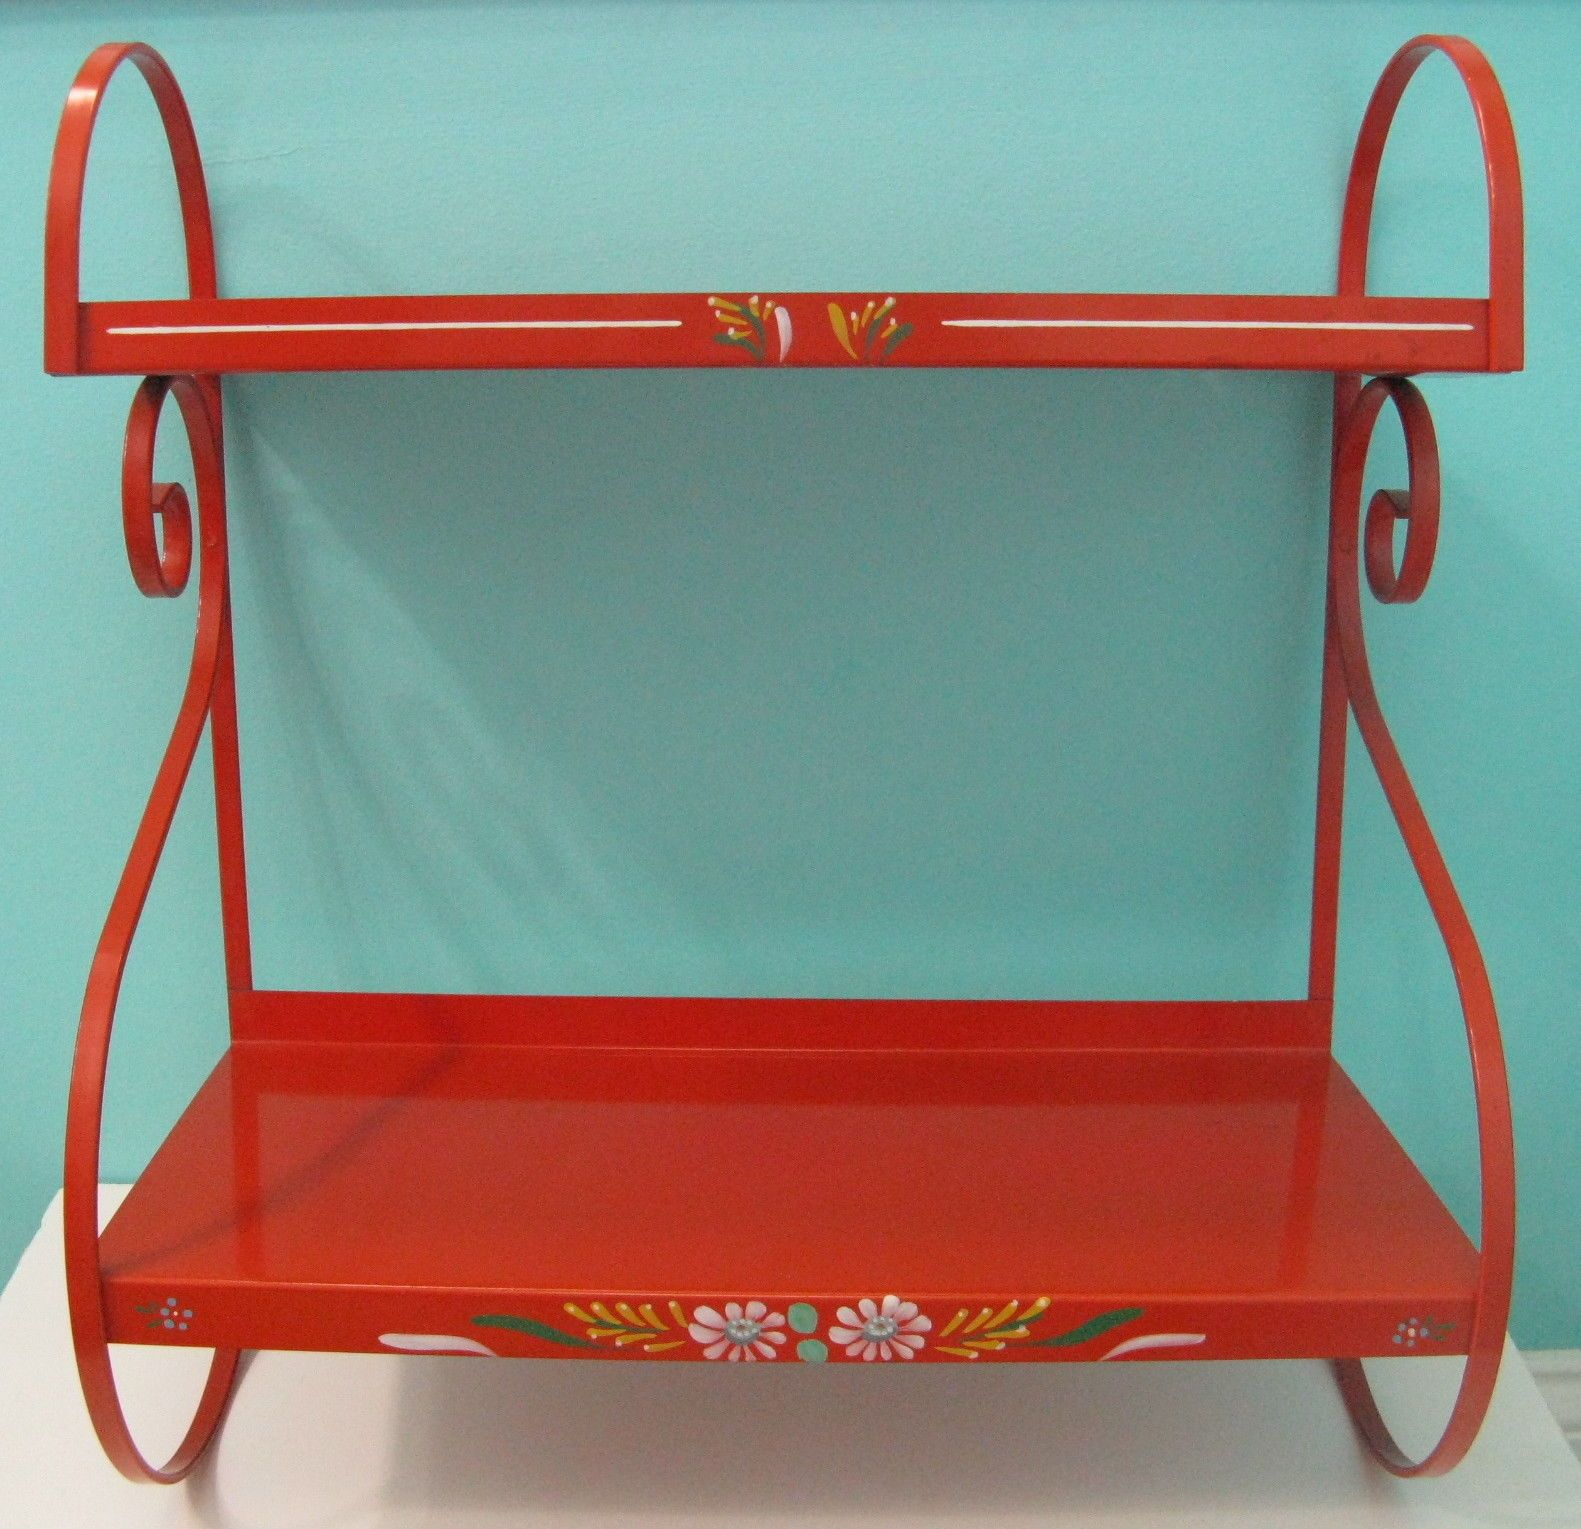 Superb Vintage Ransburg Metal Shelves Large Hanging Shelf Red Interior Design Ideas Clesiryabchikinfo